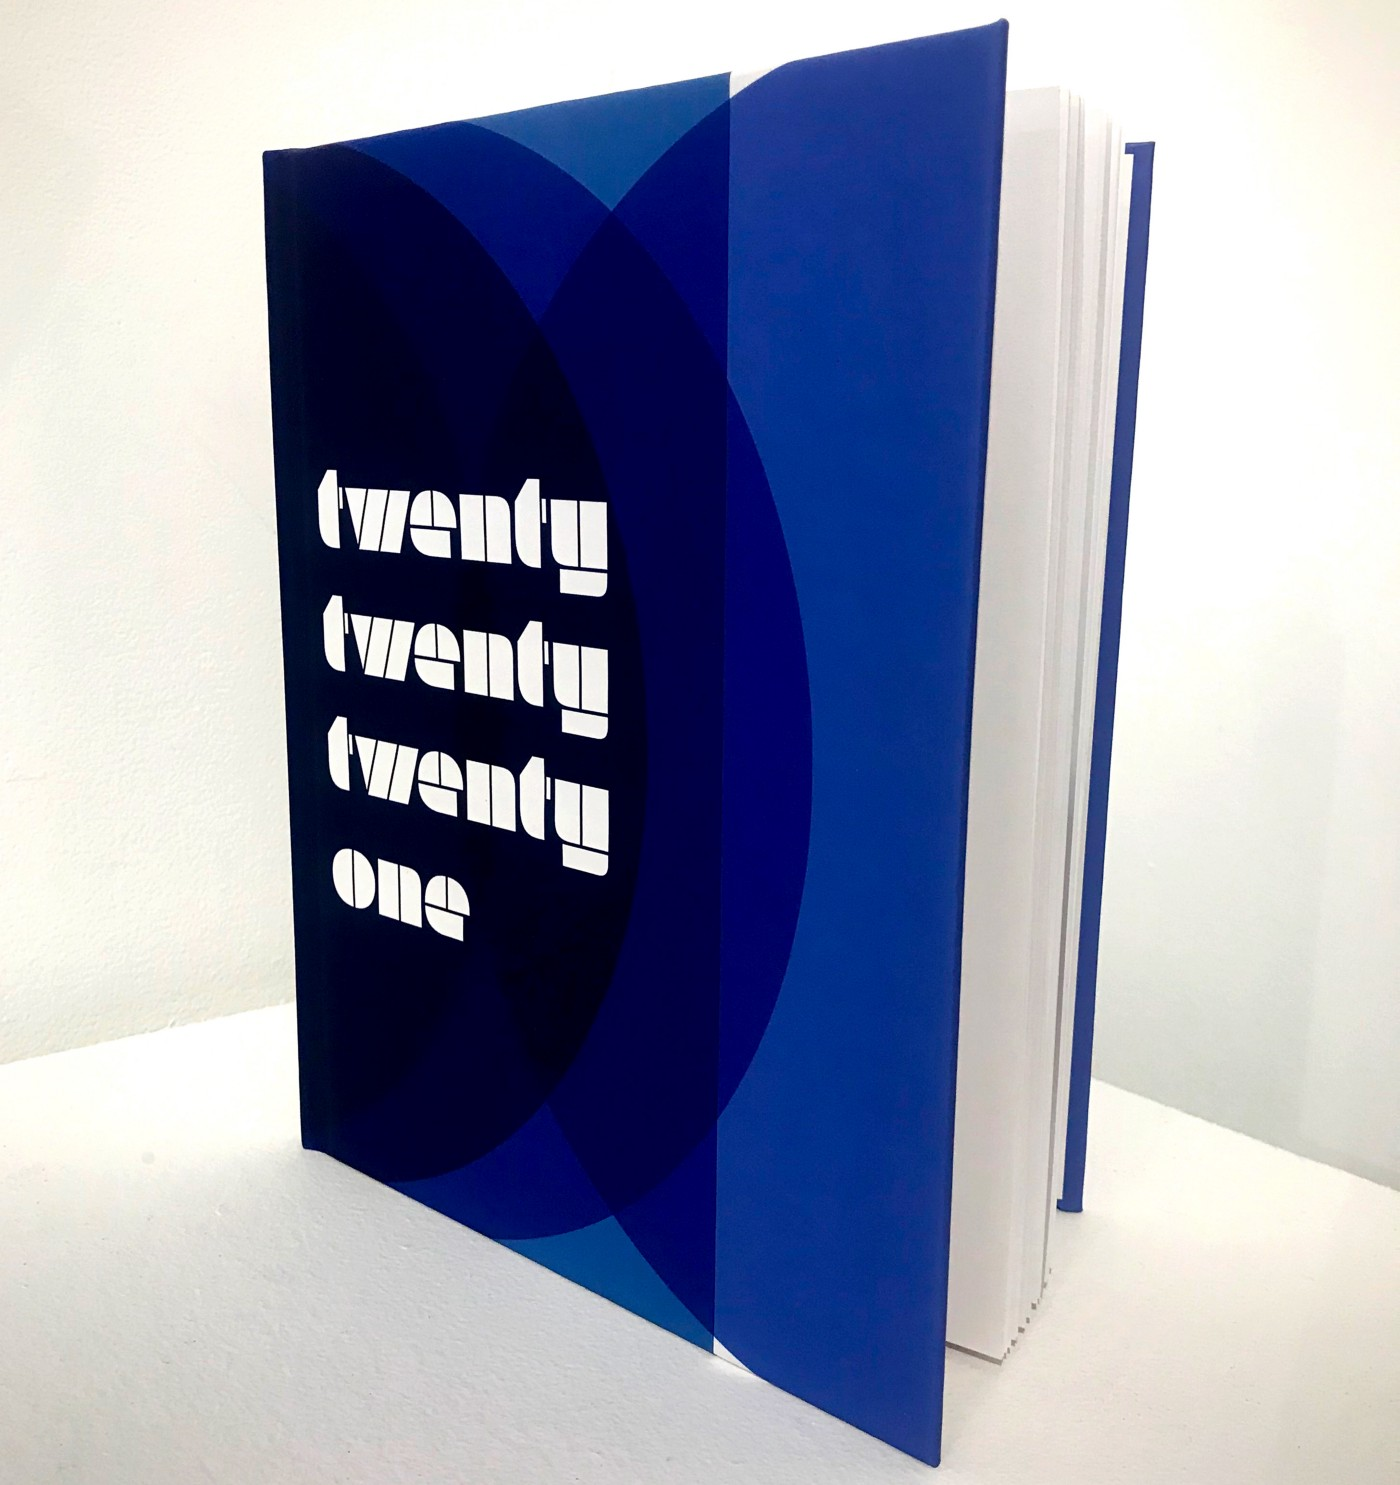 """A book, resting upright and slightly open, rests on a white surface witha white background. The book's cover has blue circular forms in an abstract composition, with the title """"202021"""" in white typography."""